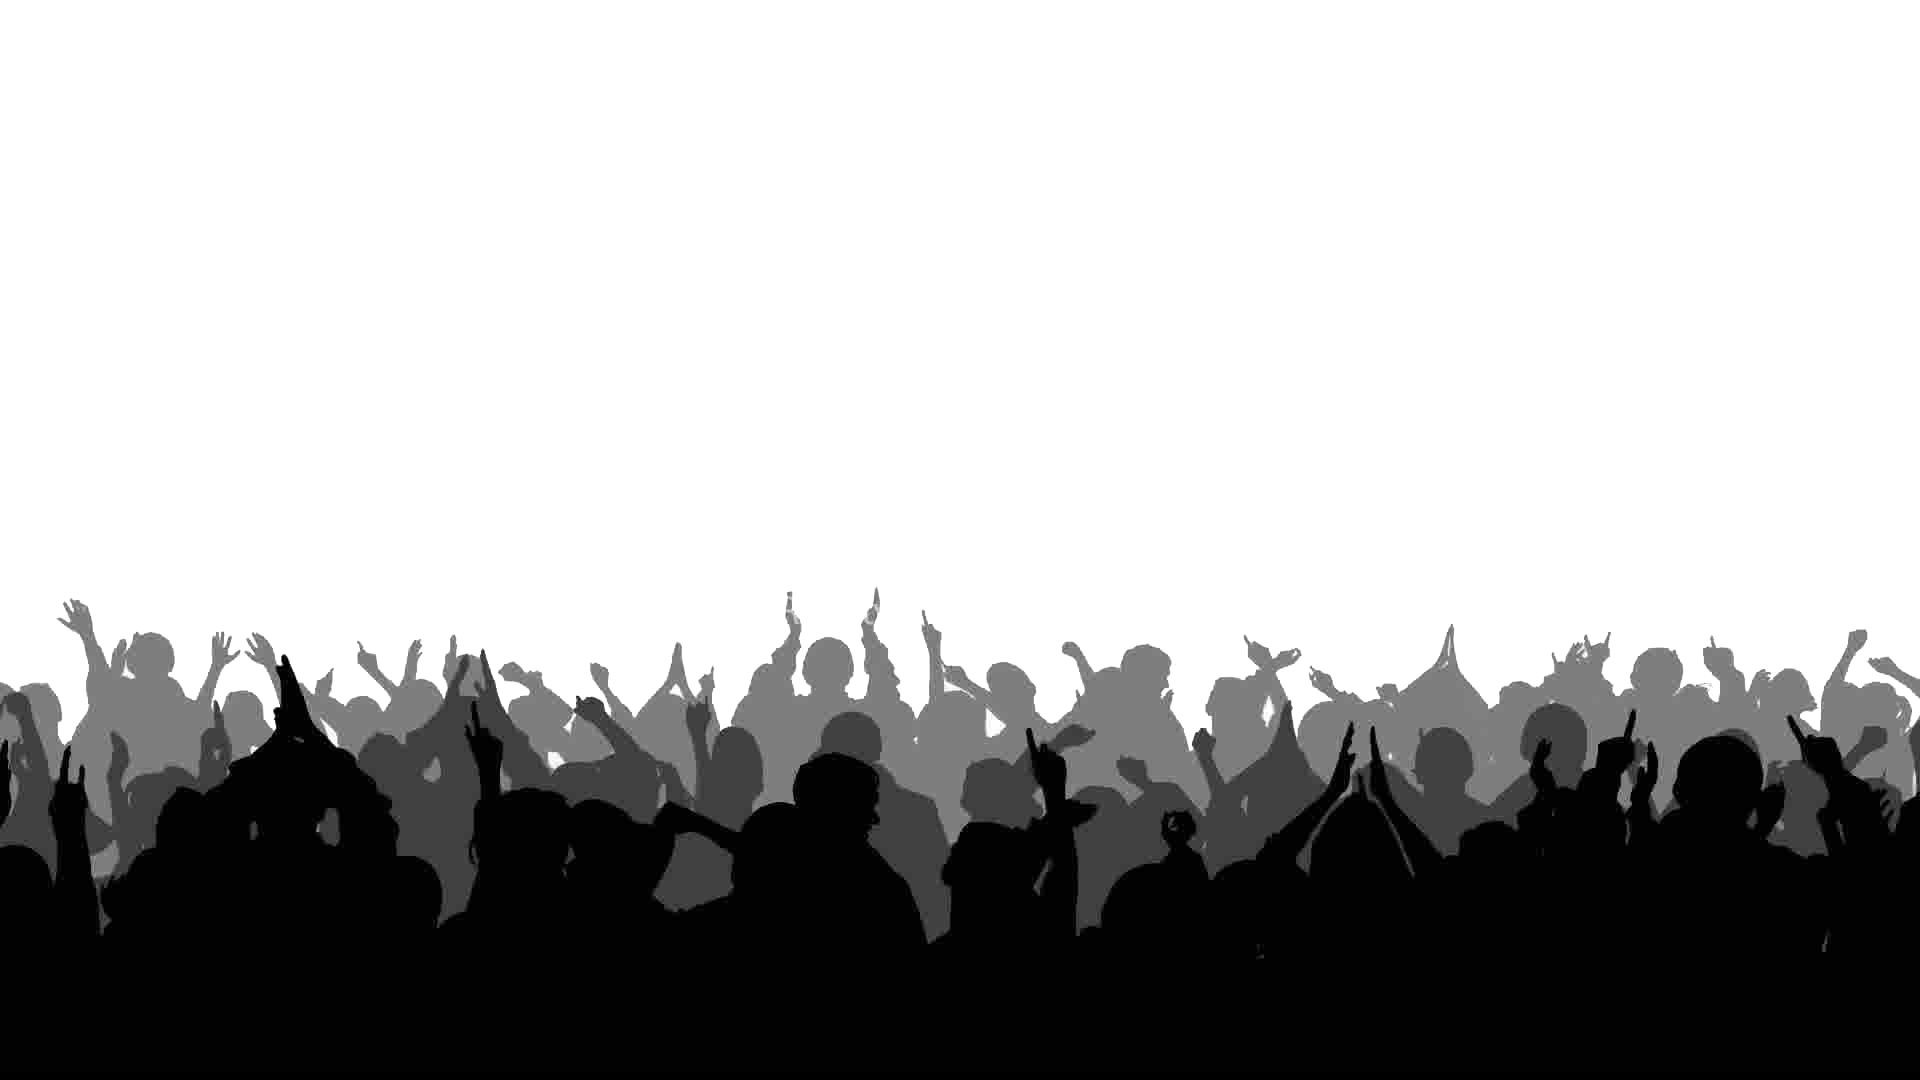 Silhouette Stock footage Crowd Clip art.